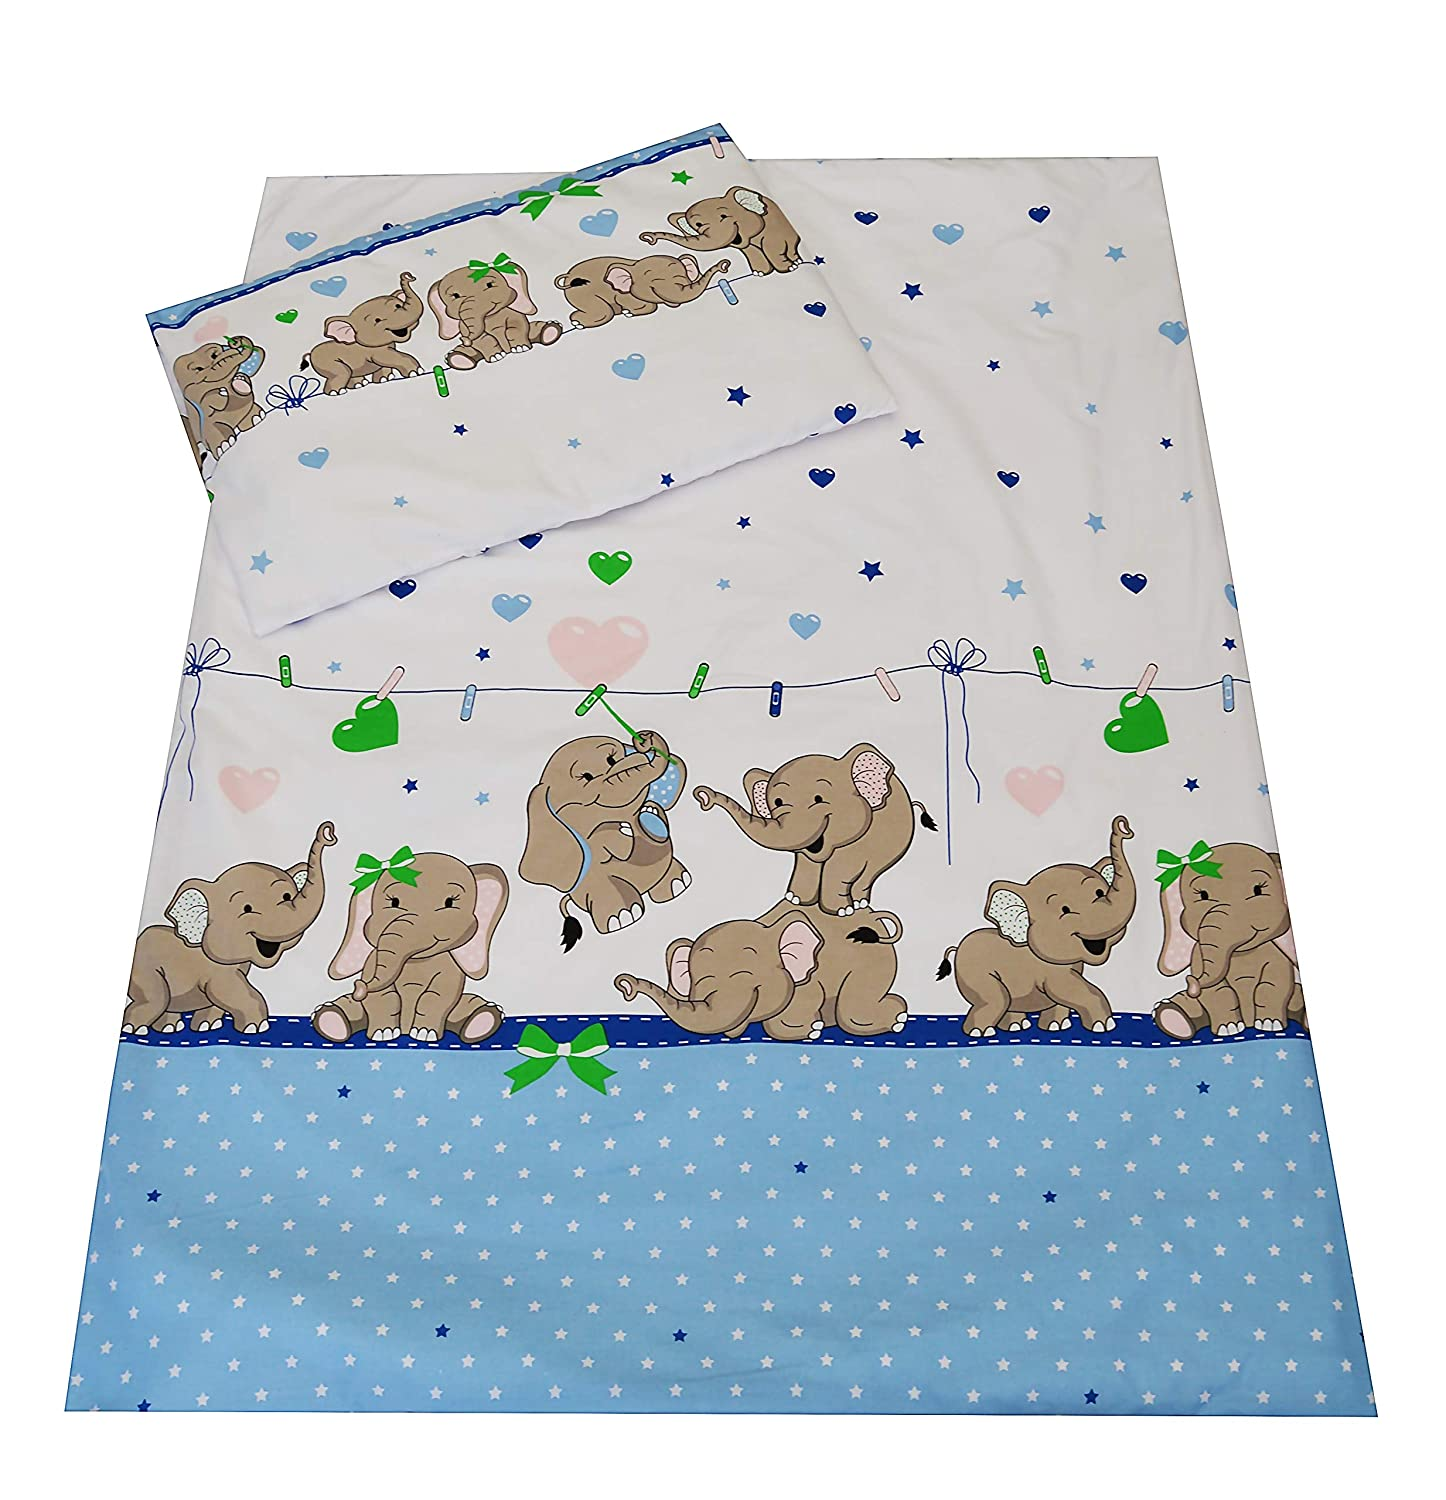 babies-island Children's Bedding set- Boys Duvet Cover and Pillowcase Cot/Cot bed/Toddler - BLUE JUNGLE ELEPHANTS (90x120 cm)